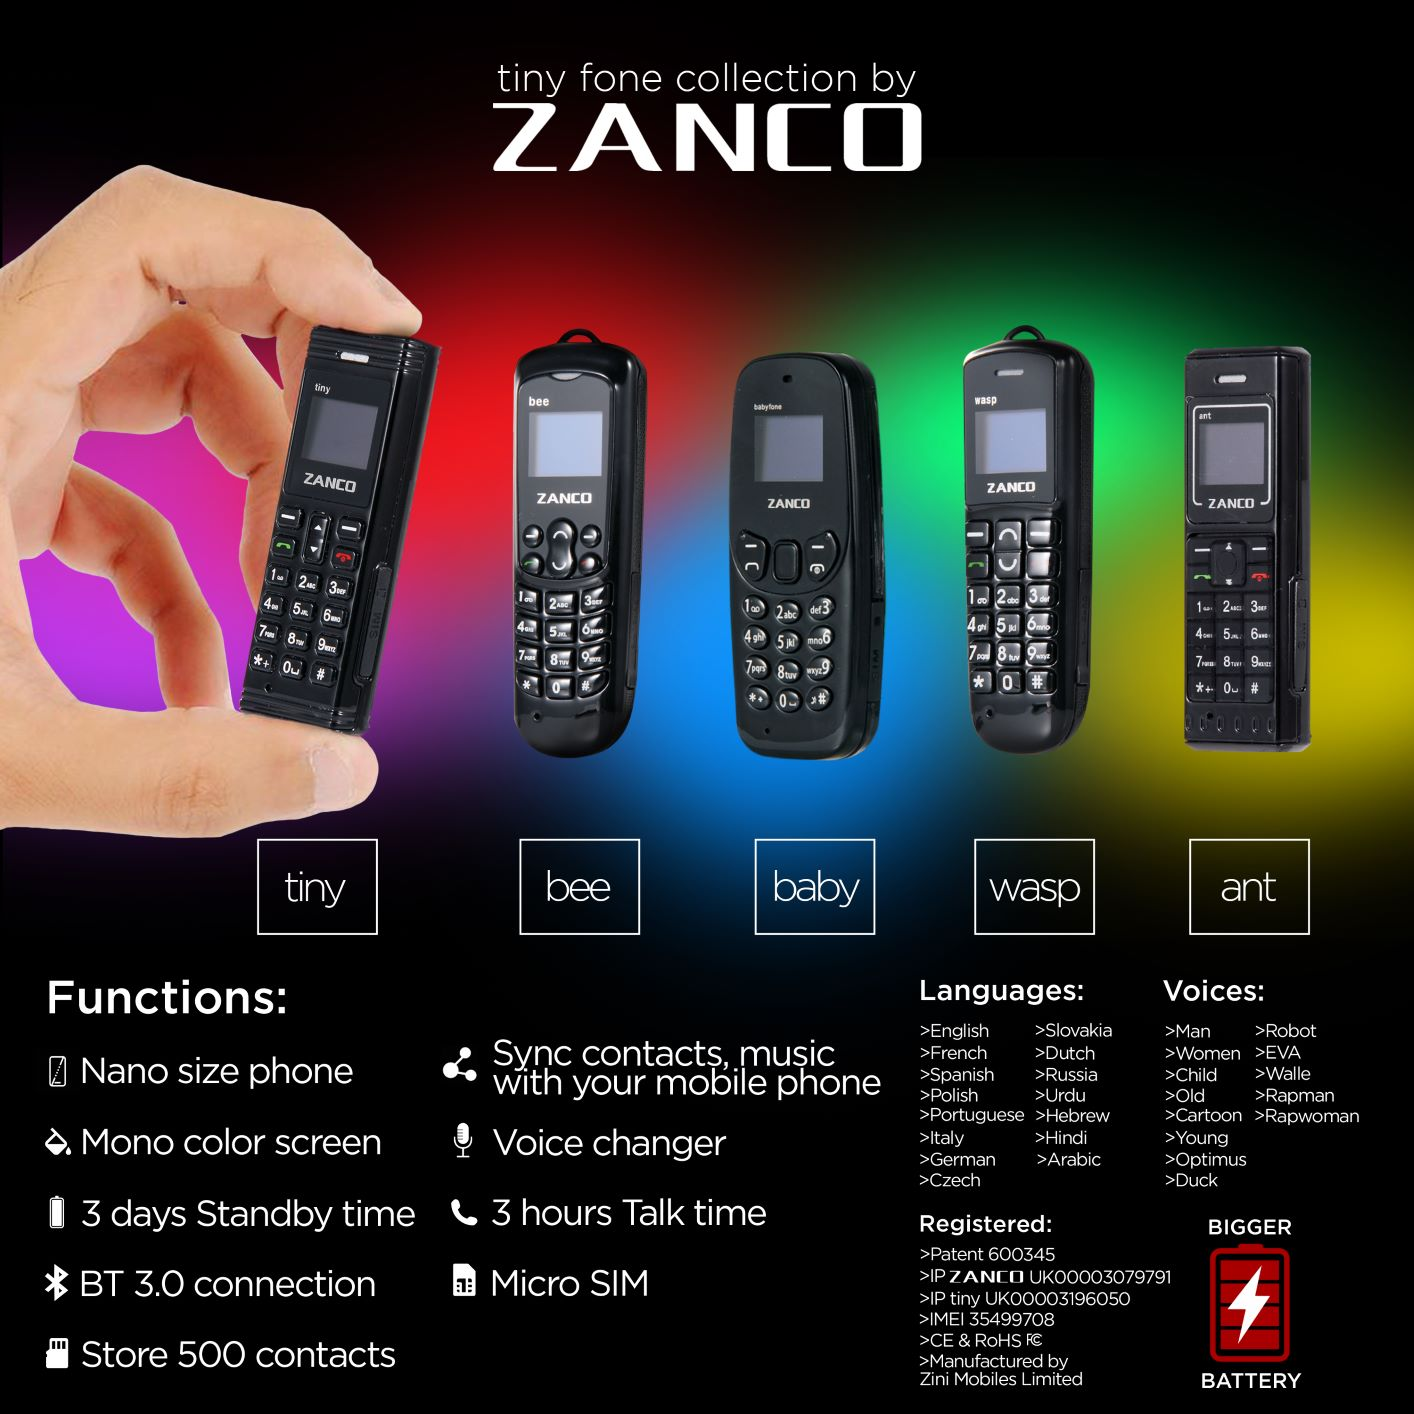 ZANCO x 20 tiny fone collection mixed zanco mini phones cellular phone unlocked cell phone mobile phones Buy factory direct